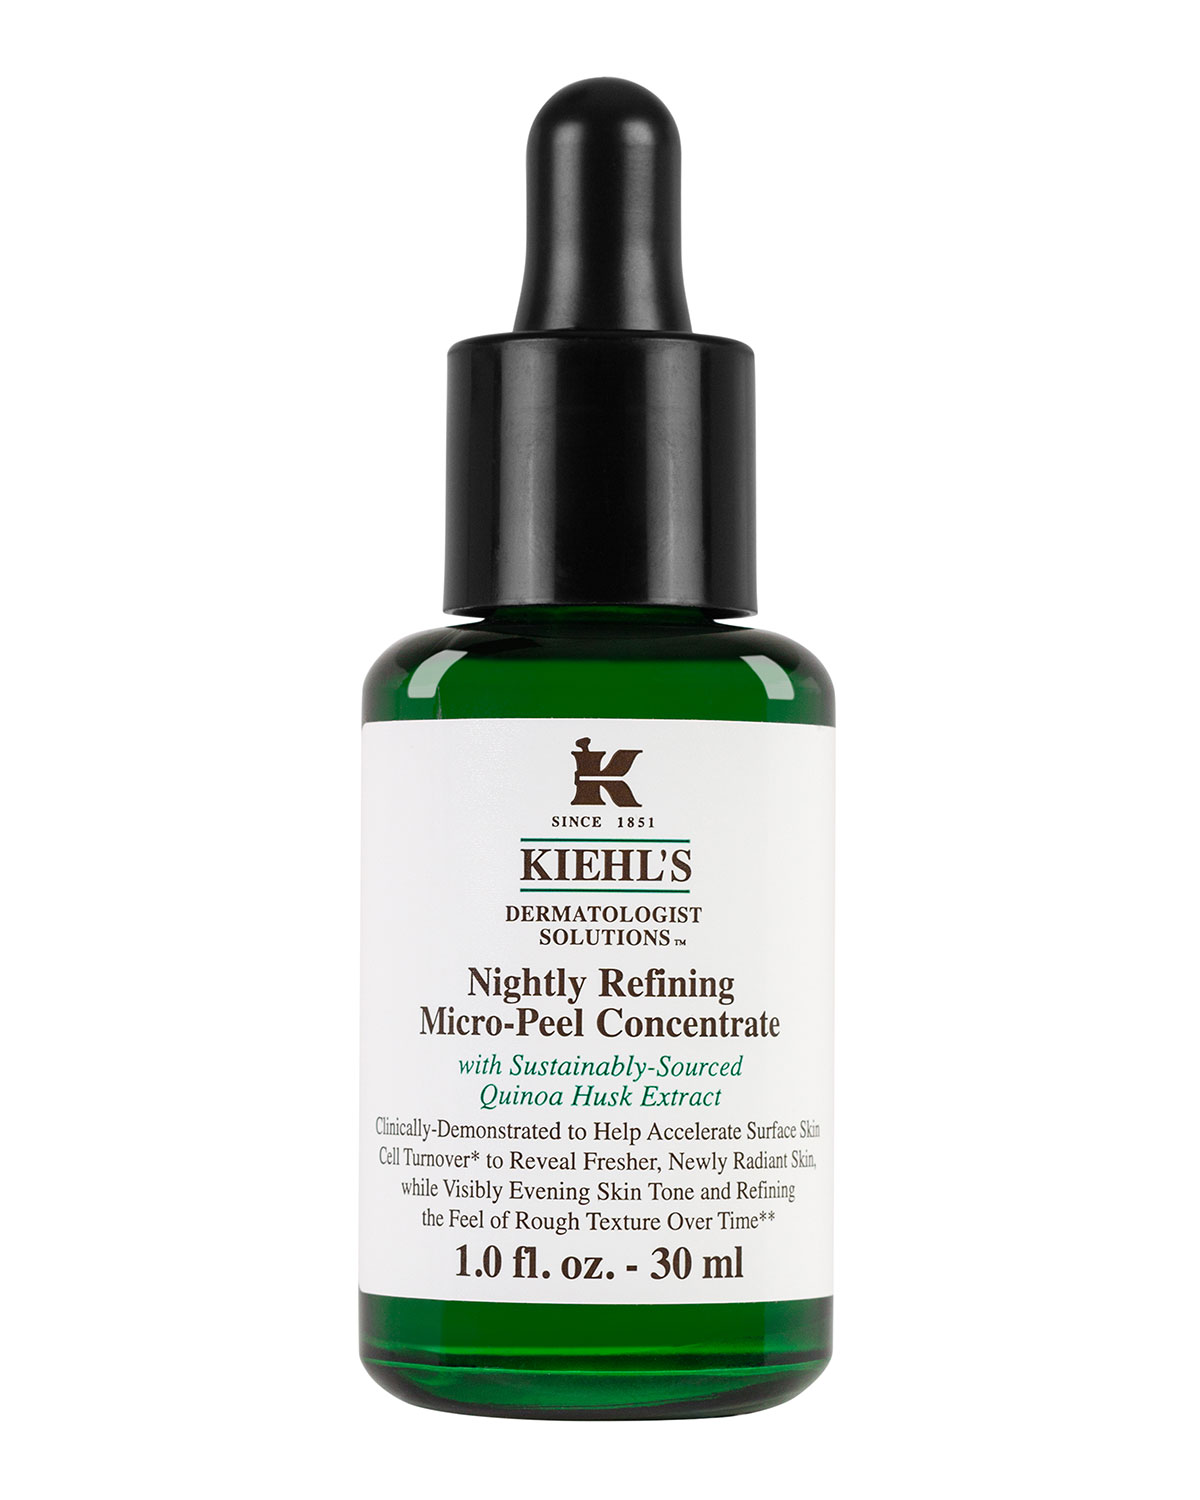 "Dermatologist Solutionsâ""¢ Nightly Refining Micro-Peel Concentrate, 1.0 oz."